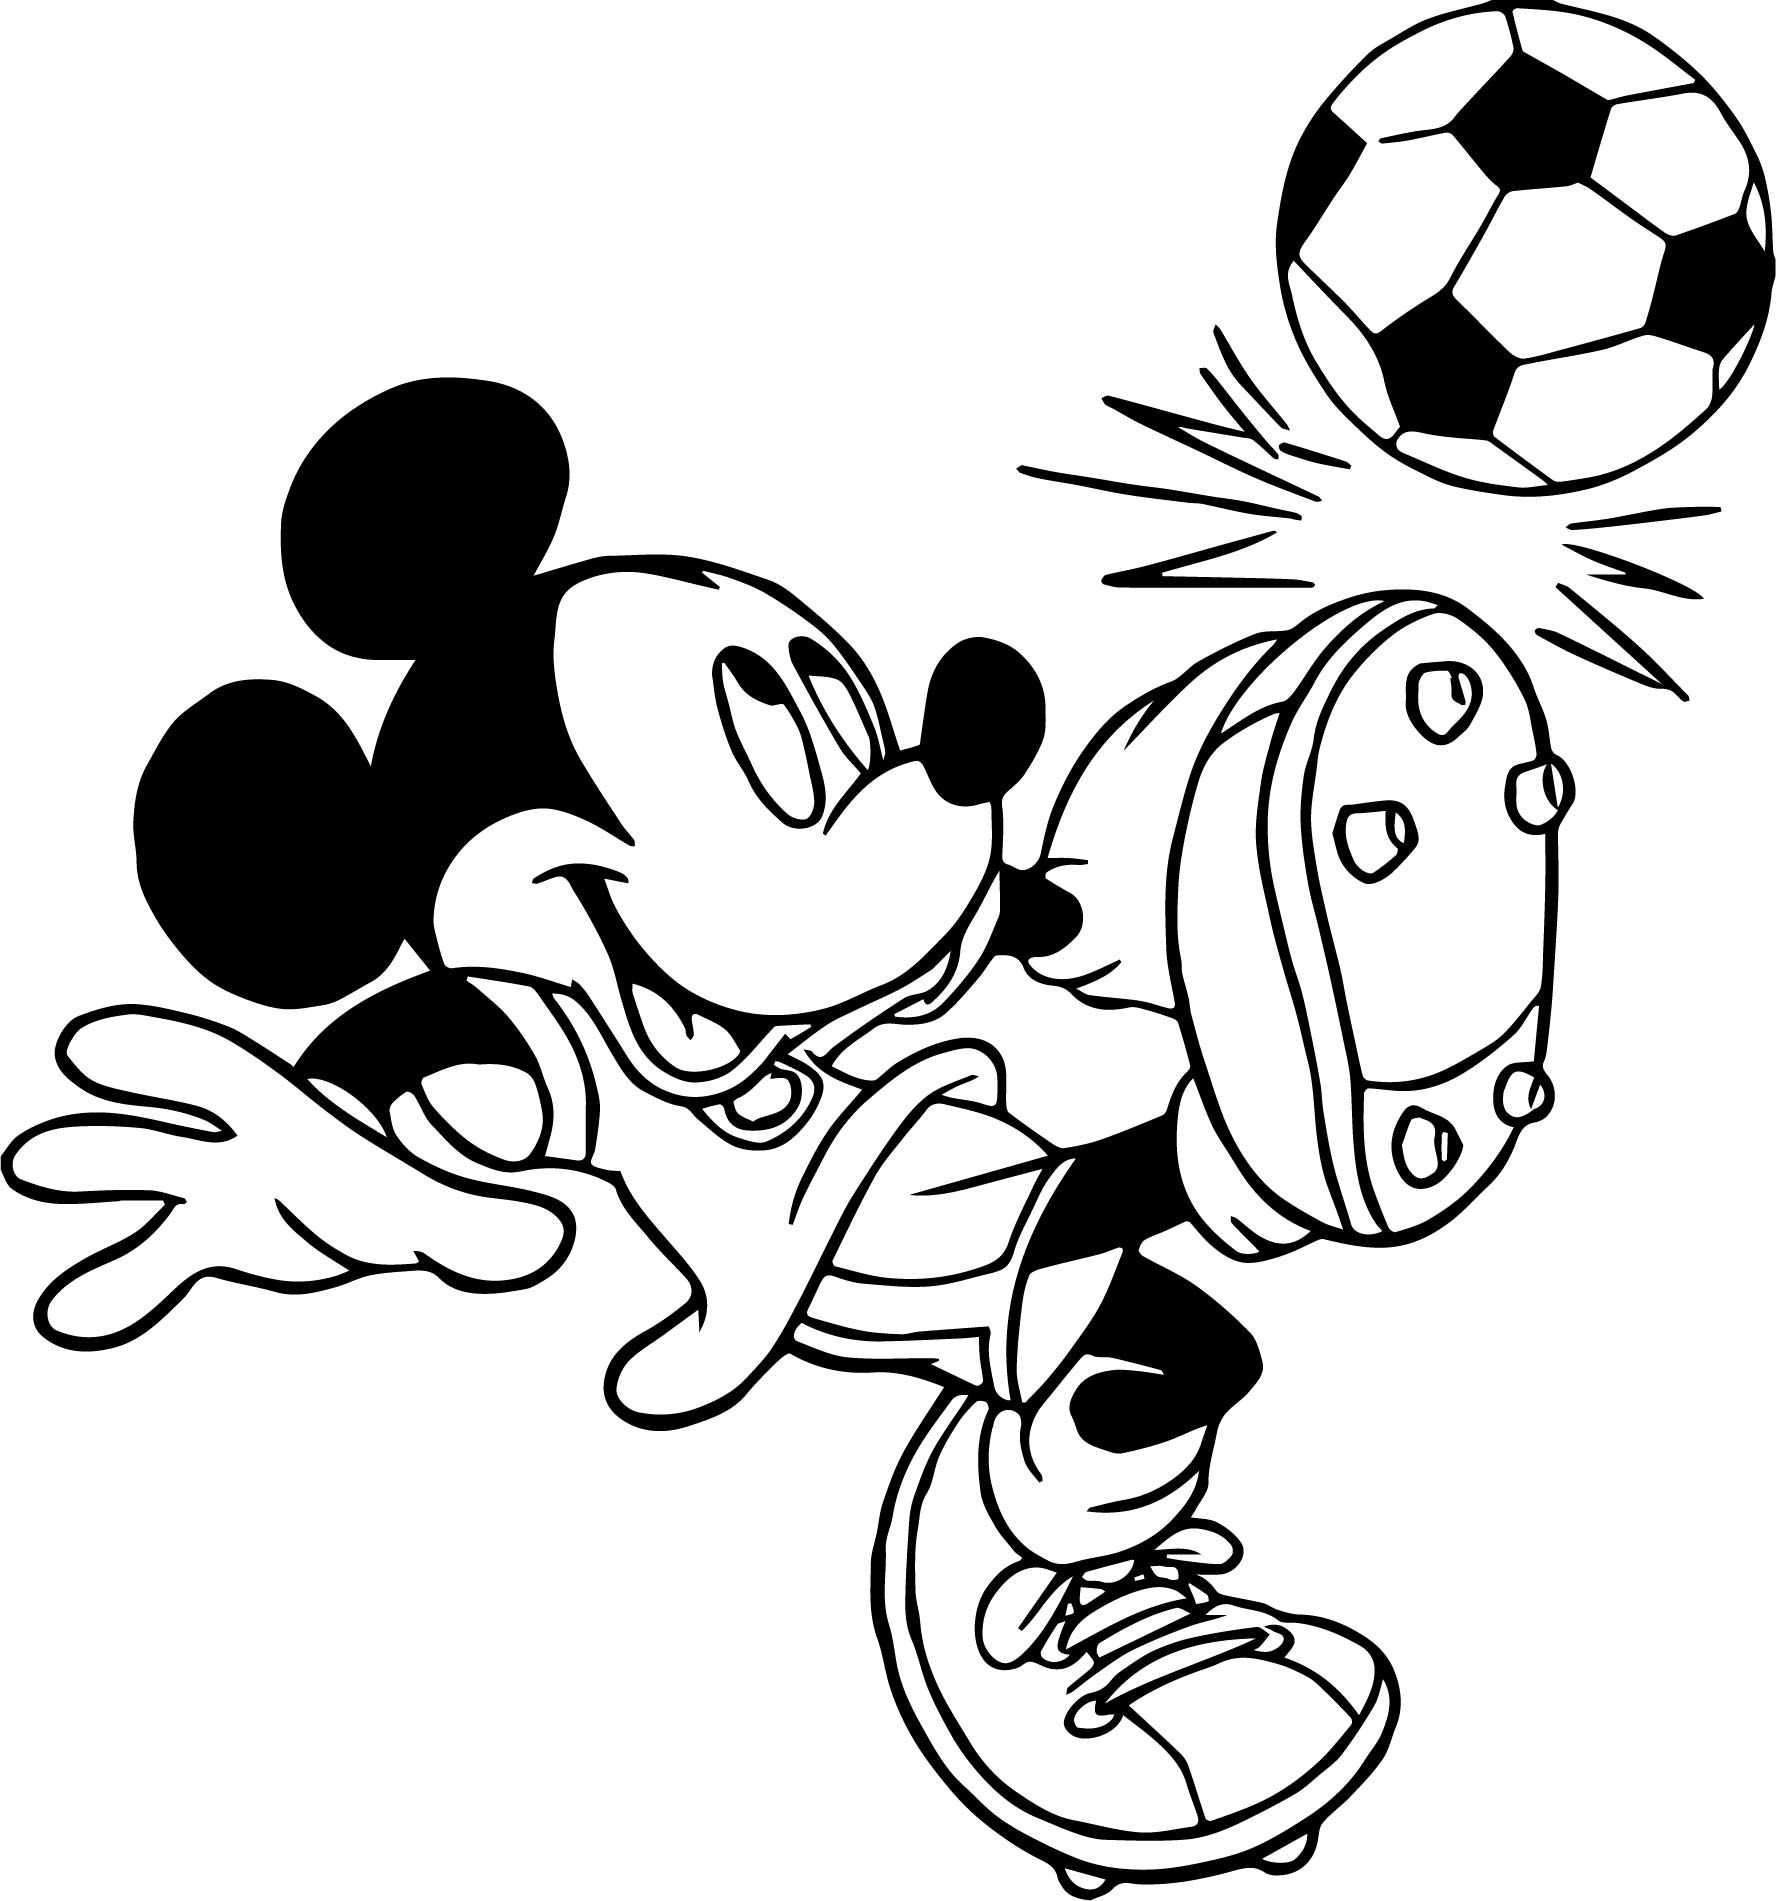 soccer player mickey mouse kicks ball playing football coloring